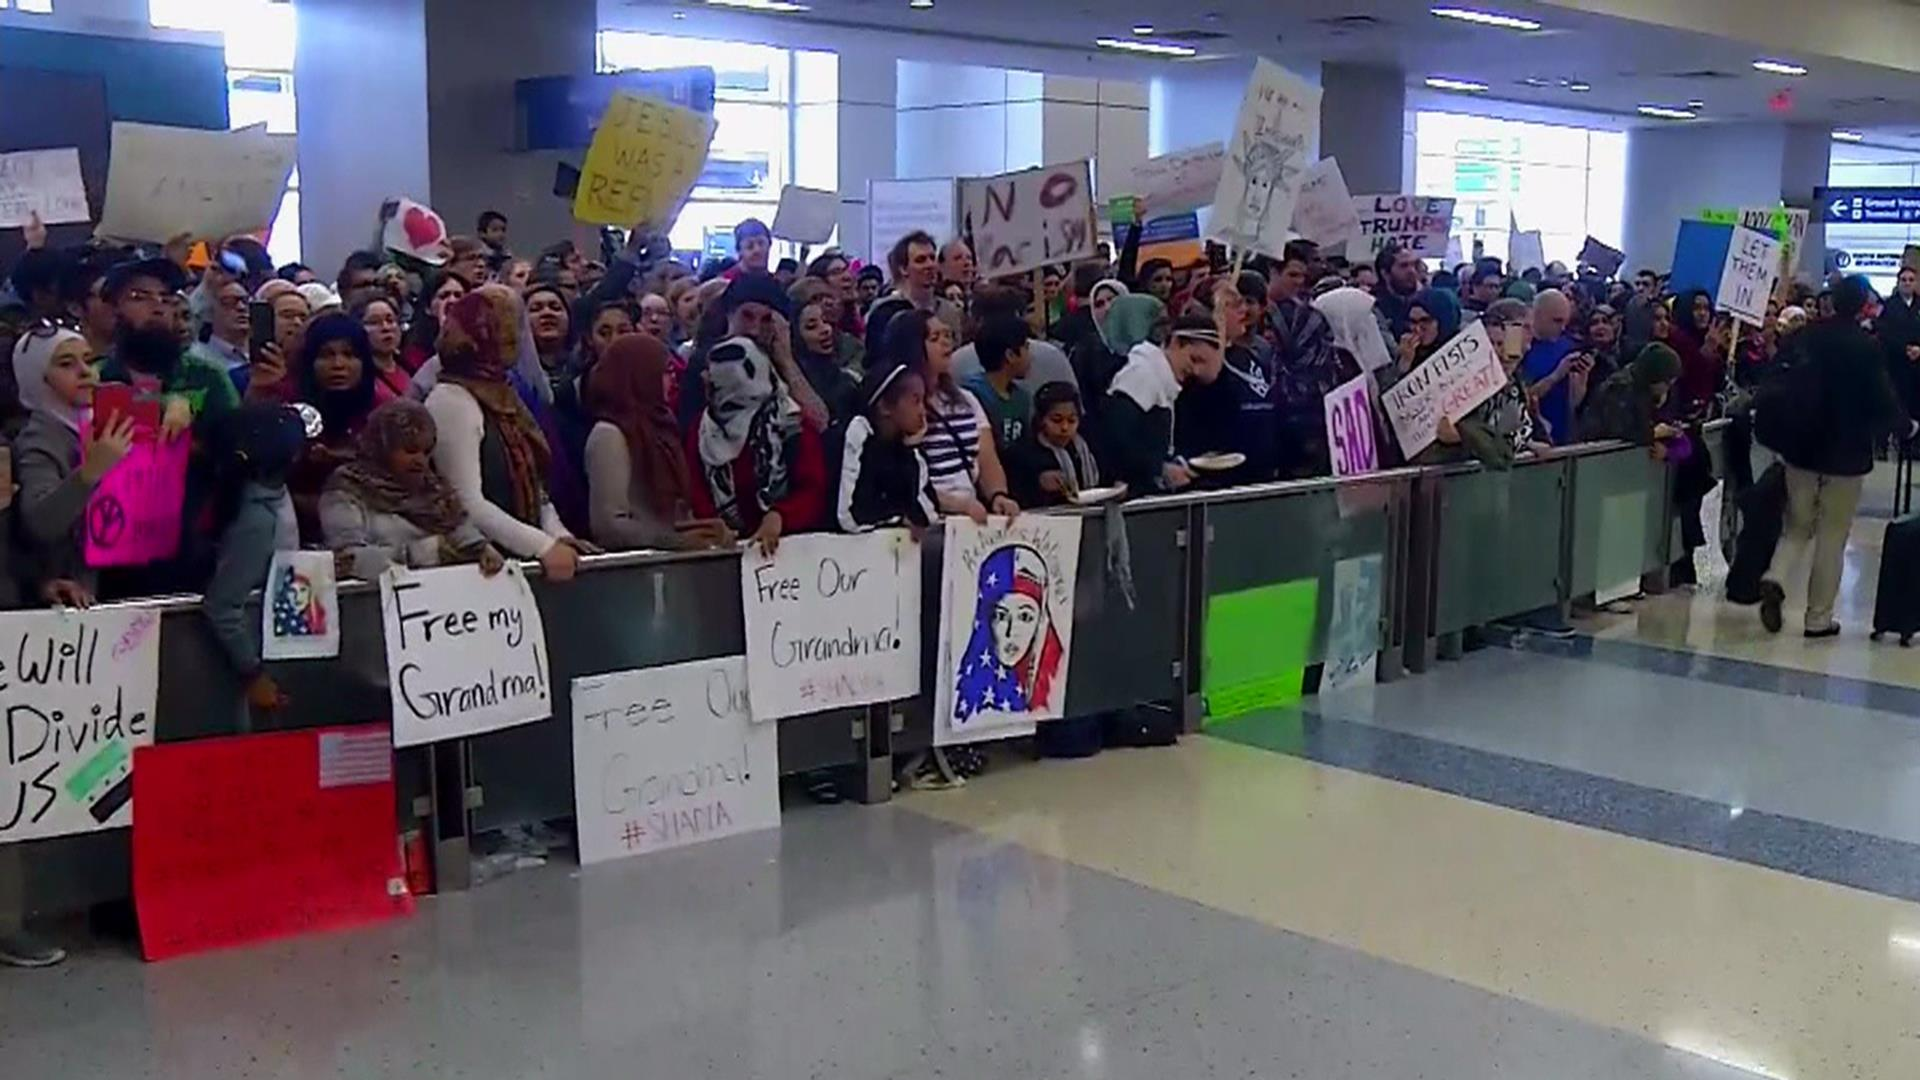 Obama rejects Trump immigration orders, backs protests